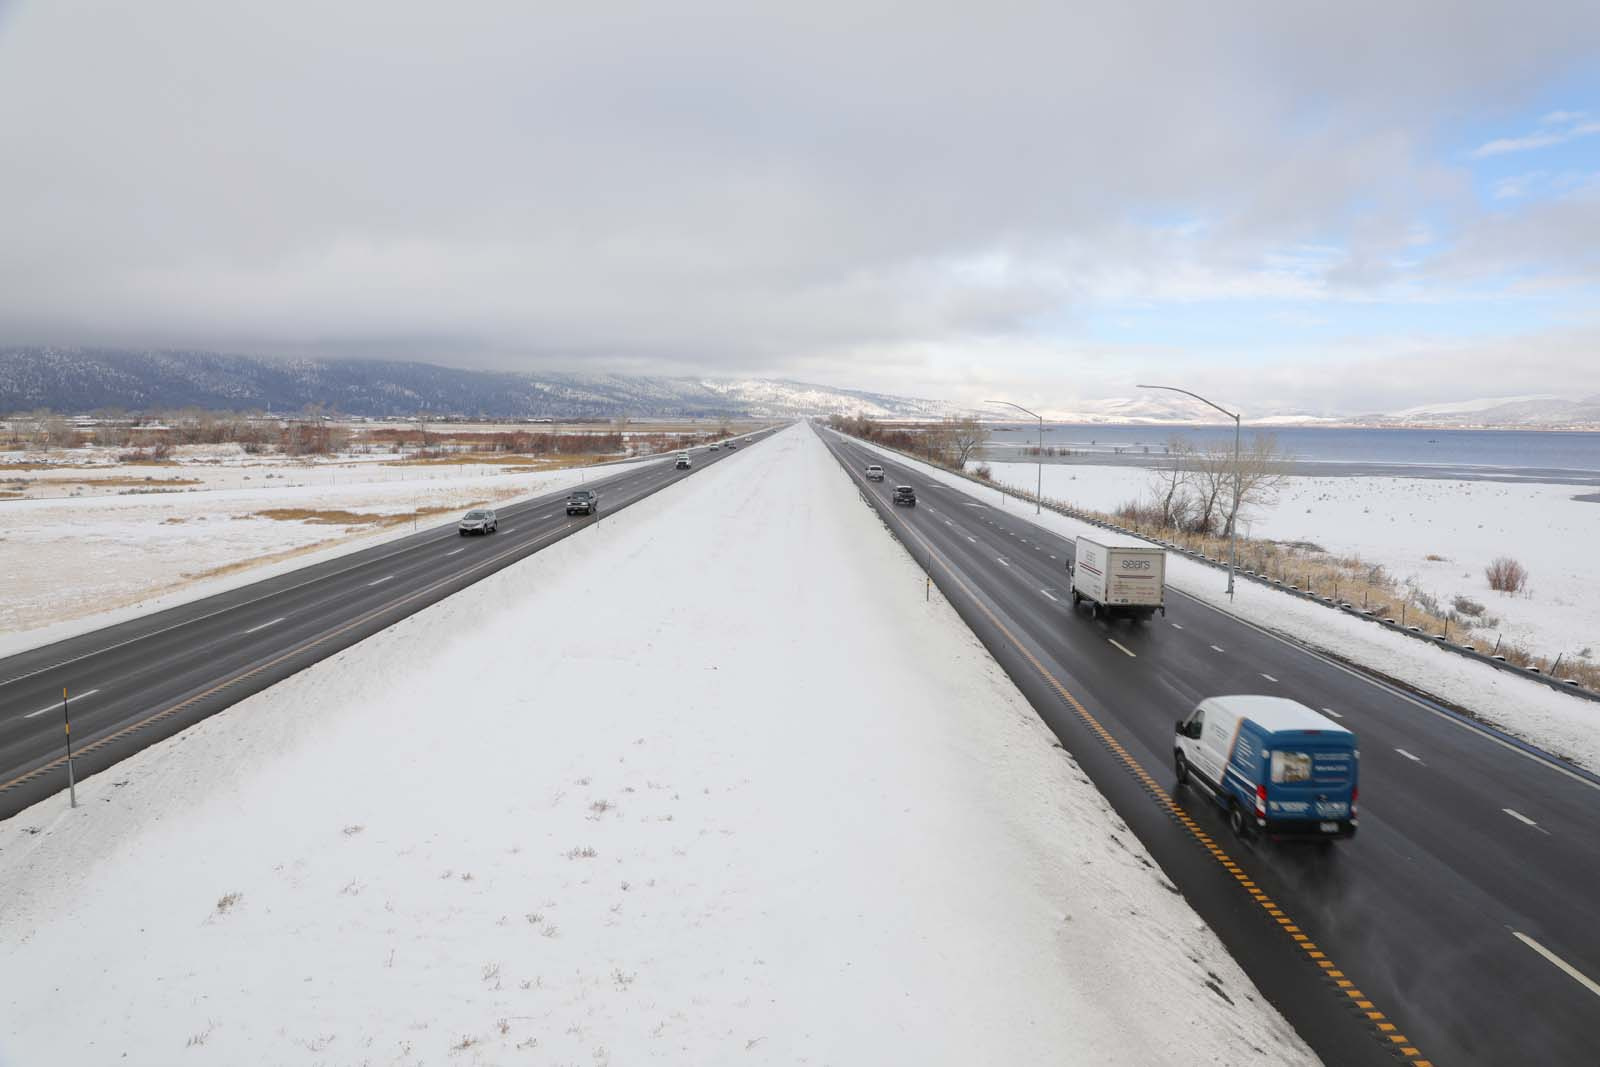 A photo of cars driving along Interstate 580 during winter